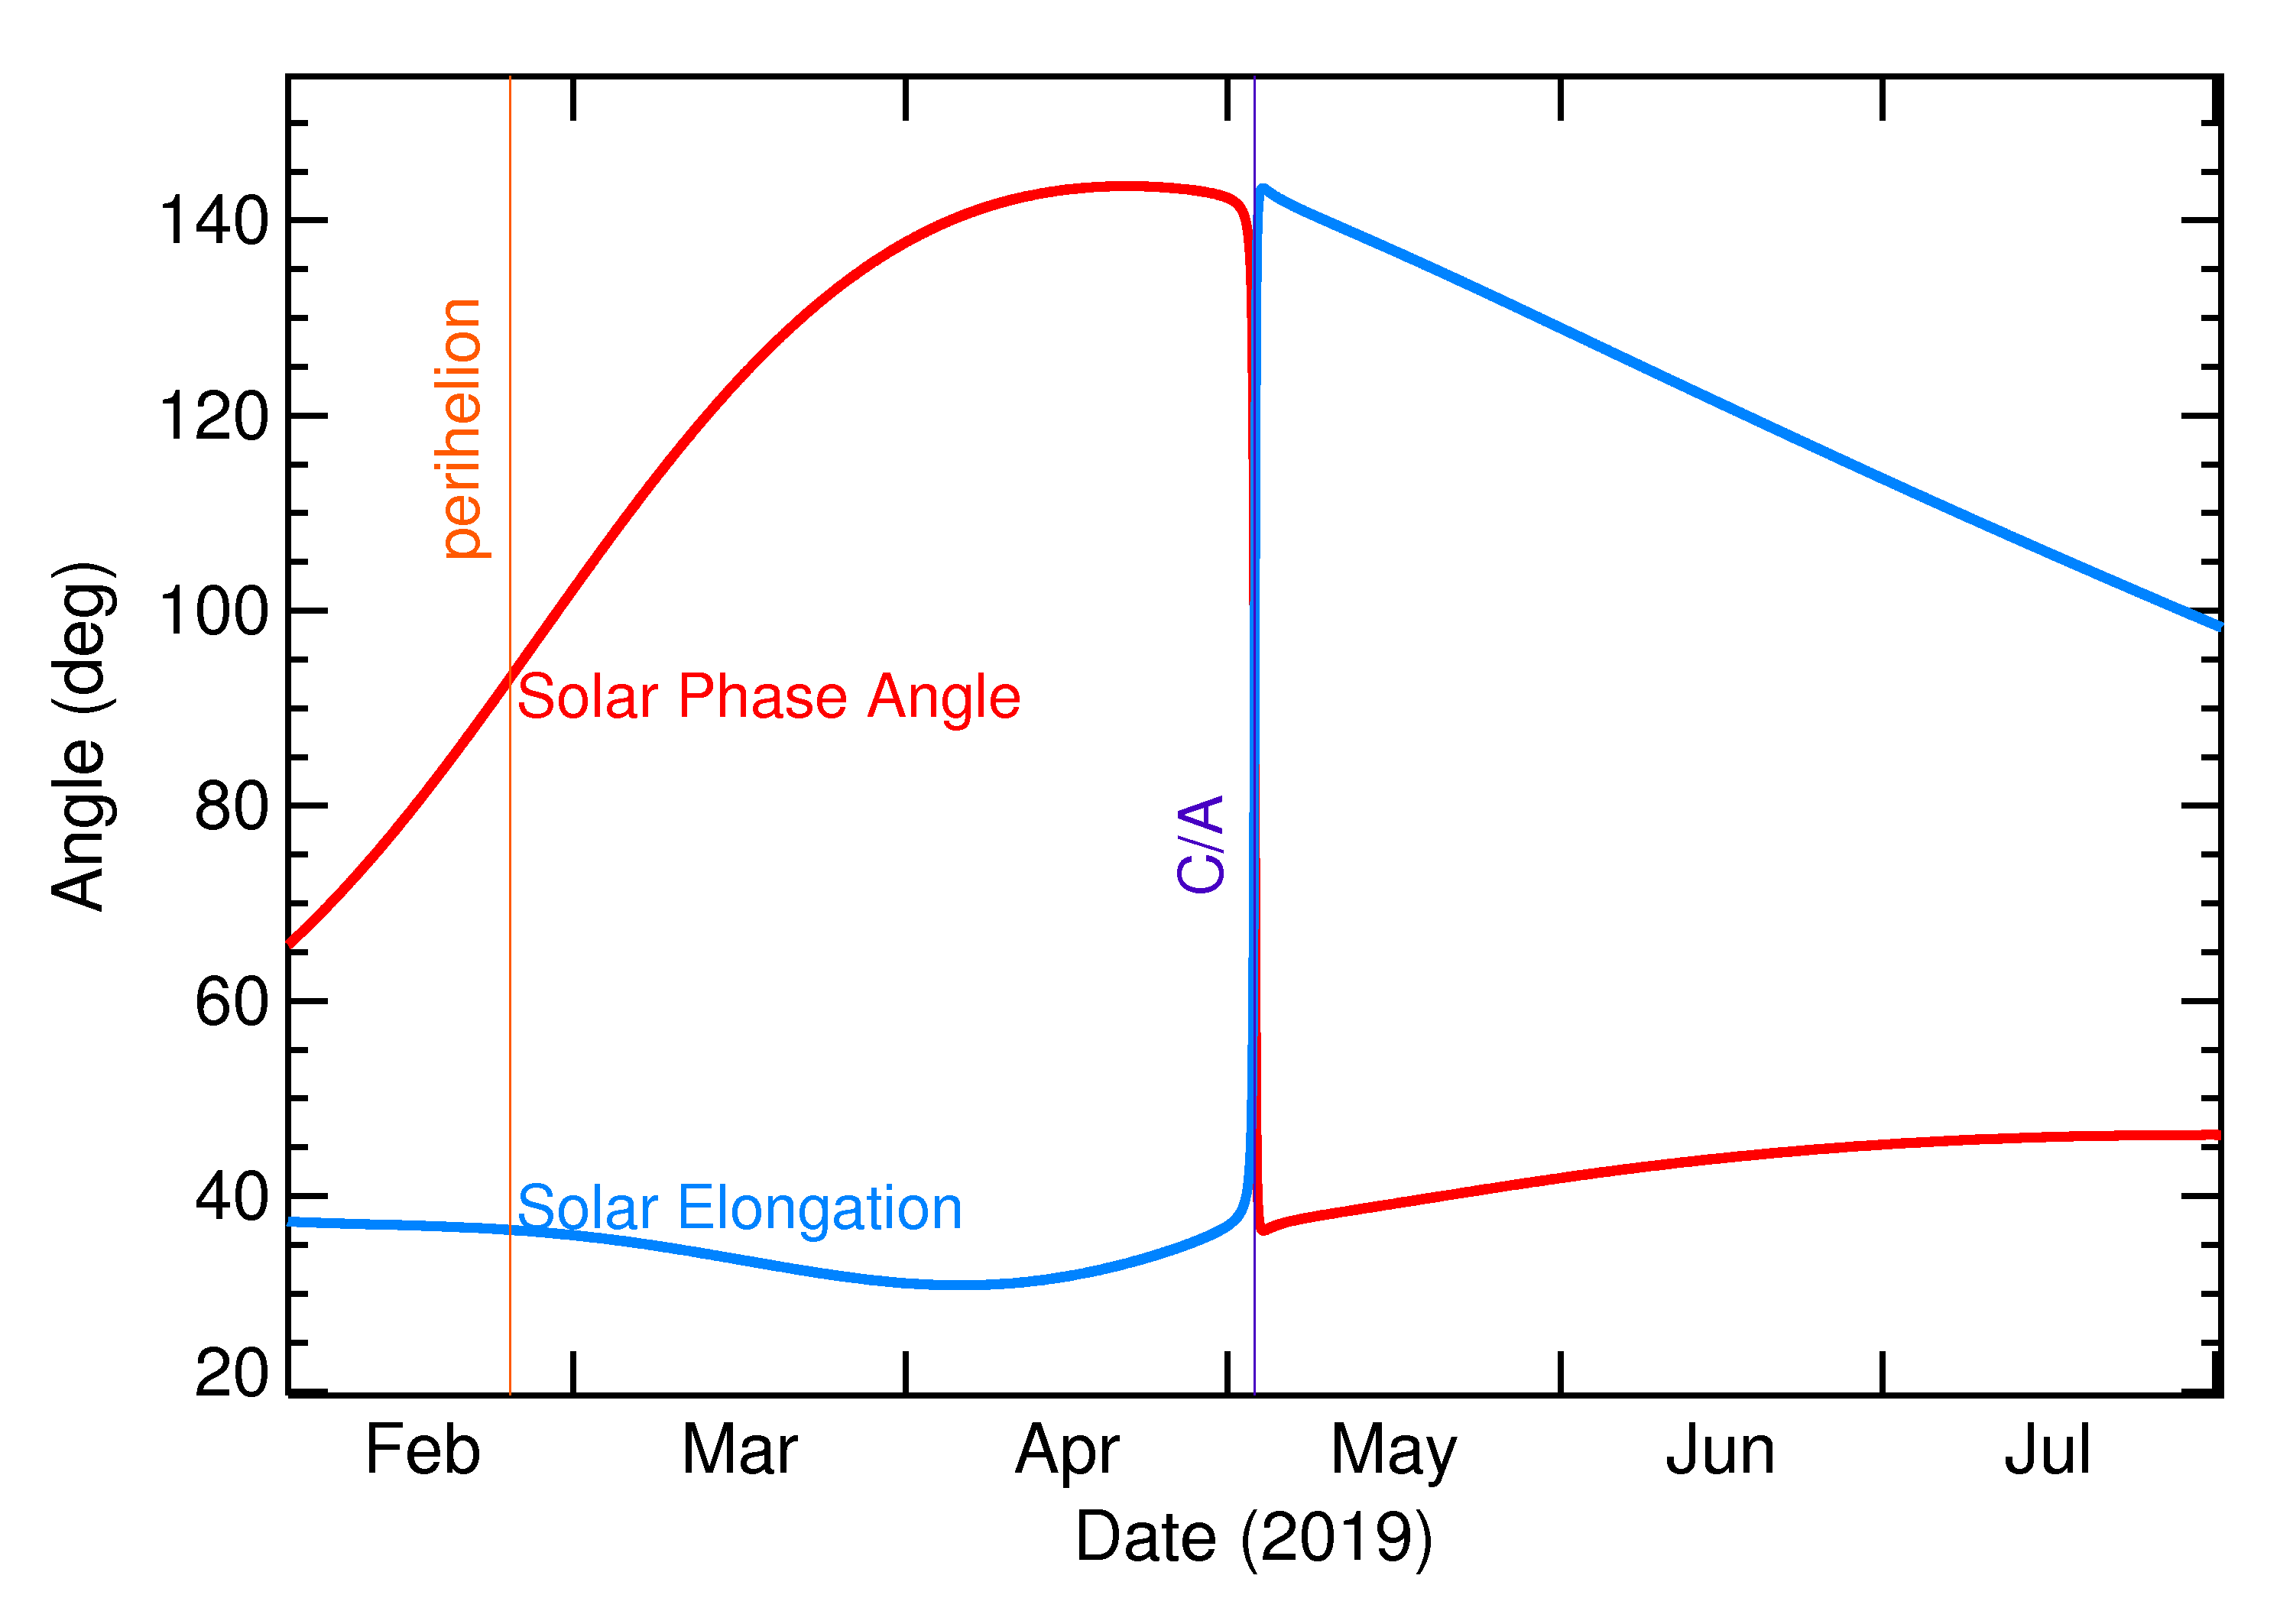 Solar Elongation and Solar Phase Angle of 2019 JX1 in the months around closest approach